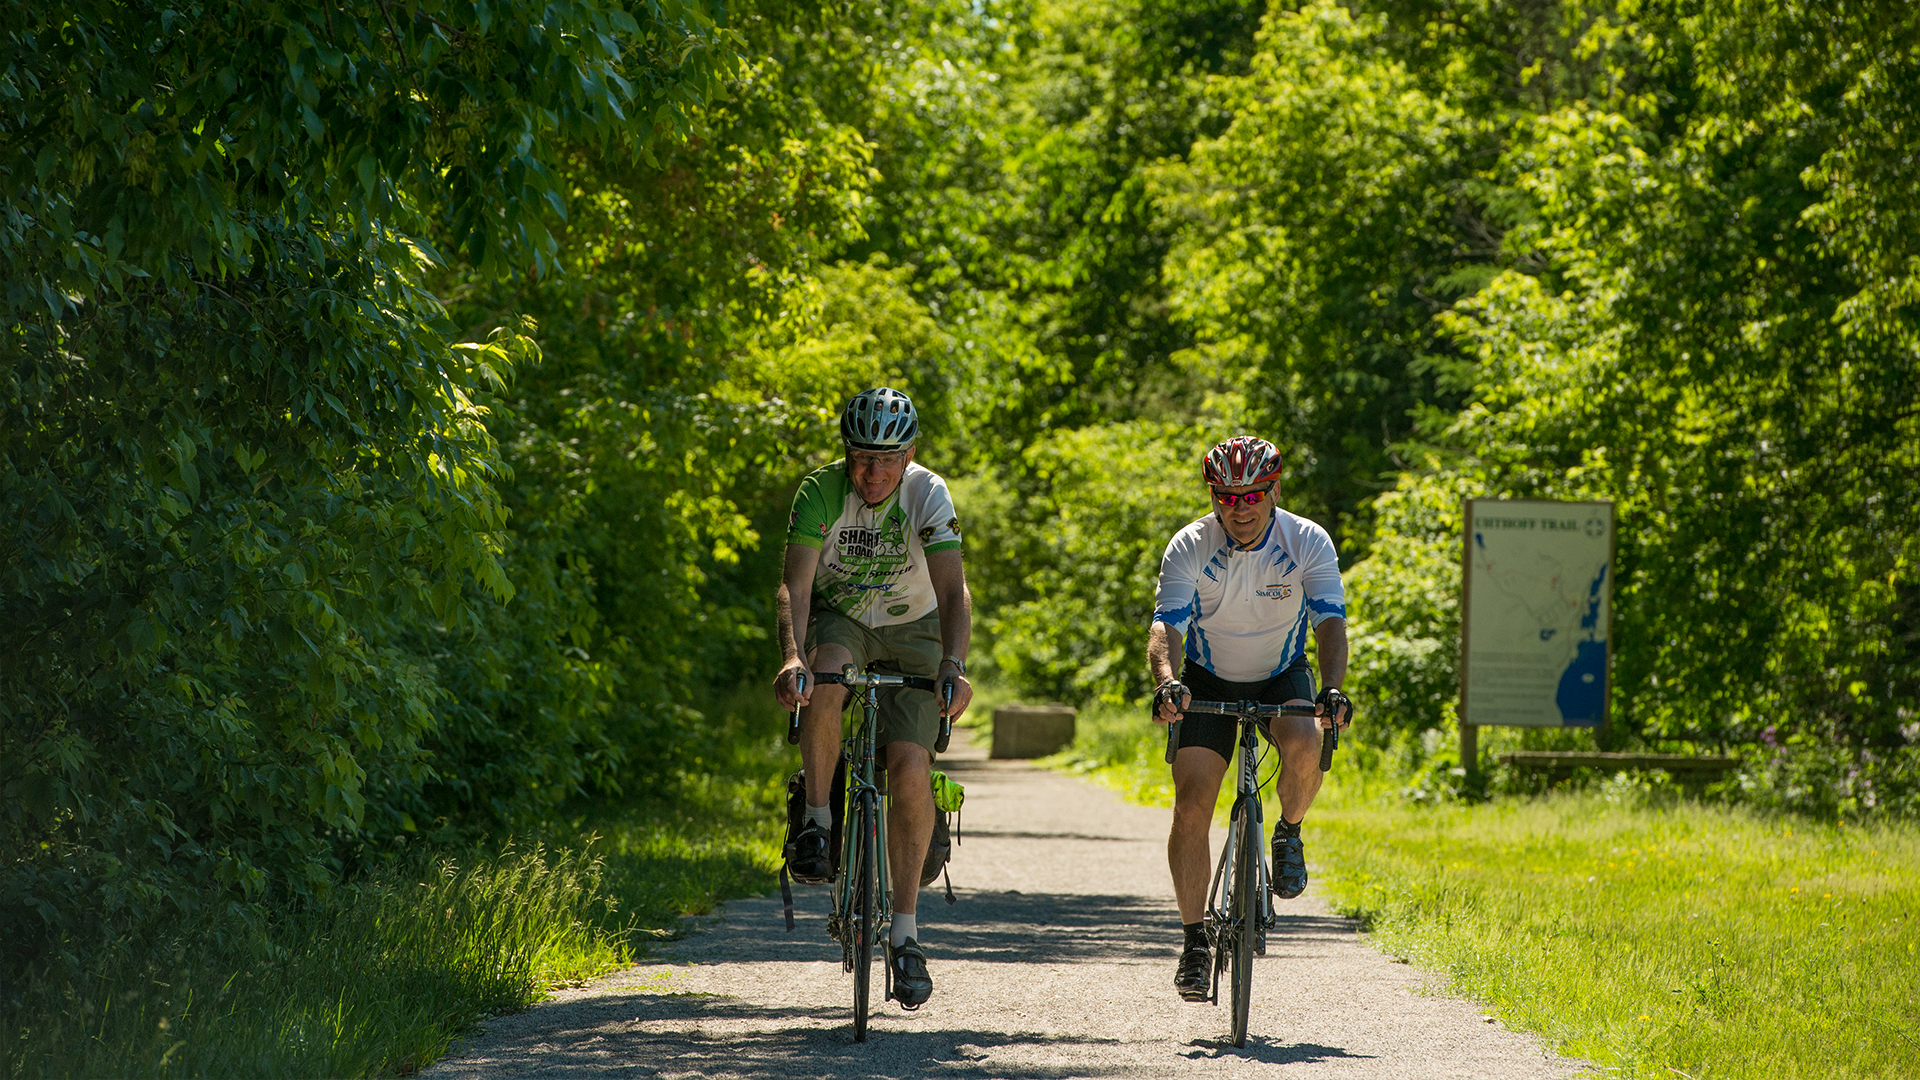 Uhthoff trail - Cycle through Ontario's beautiful scenery